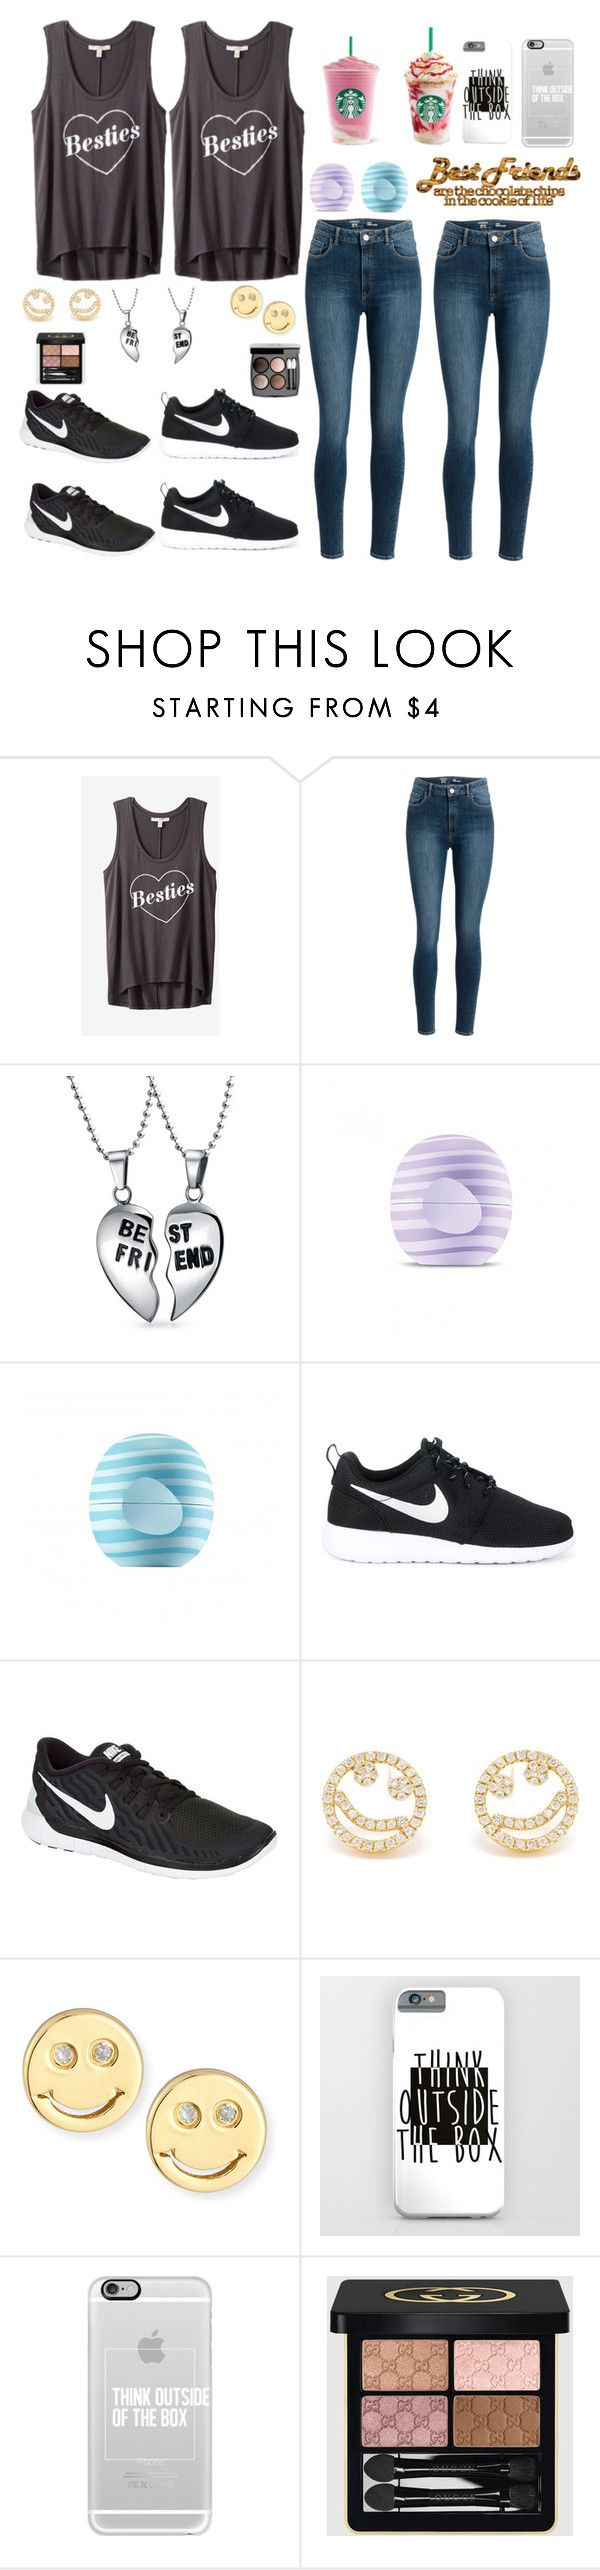 """""""Shoutout to @violingirl2003"""" by ahriraine ❤ liked on Polyvore featuring Express, Bling Jewelry, Eos, NIKE, Rosa de la Cruz, Sydney Evan, Casetify, Chanel and Gucci"""